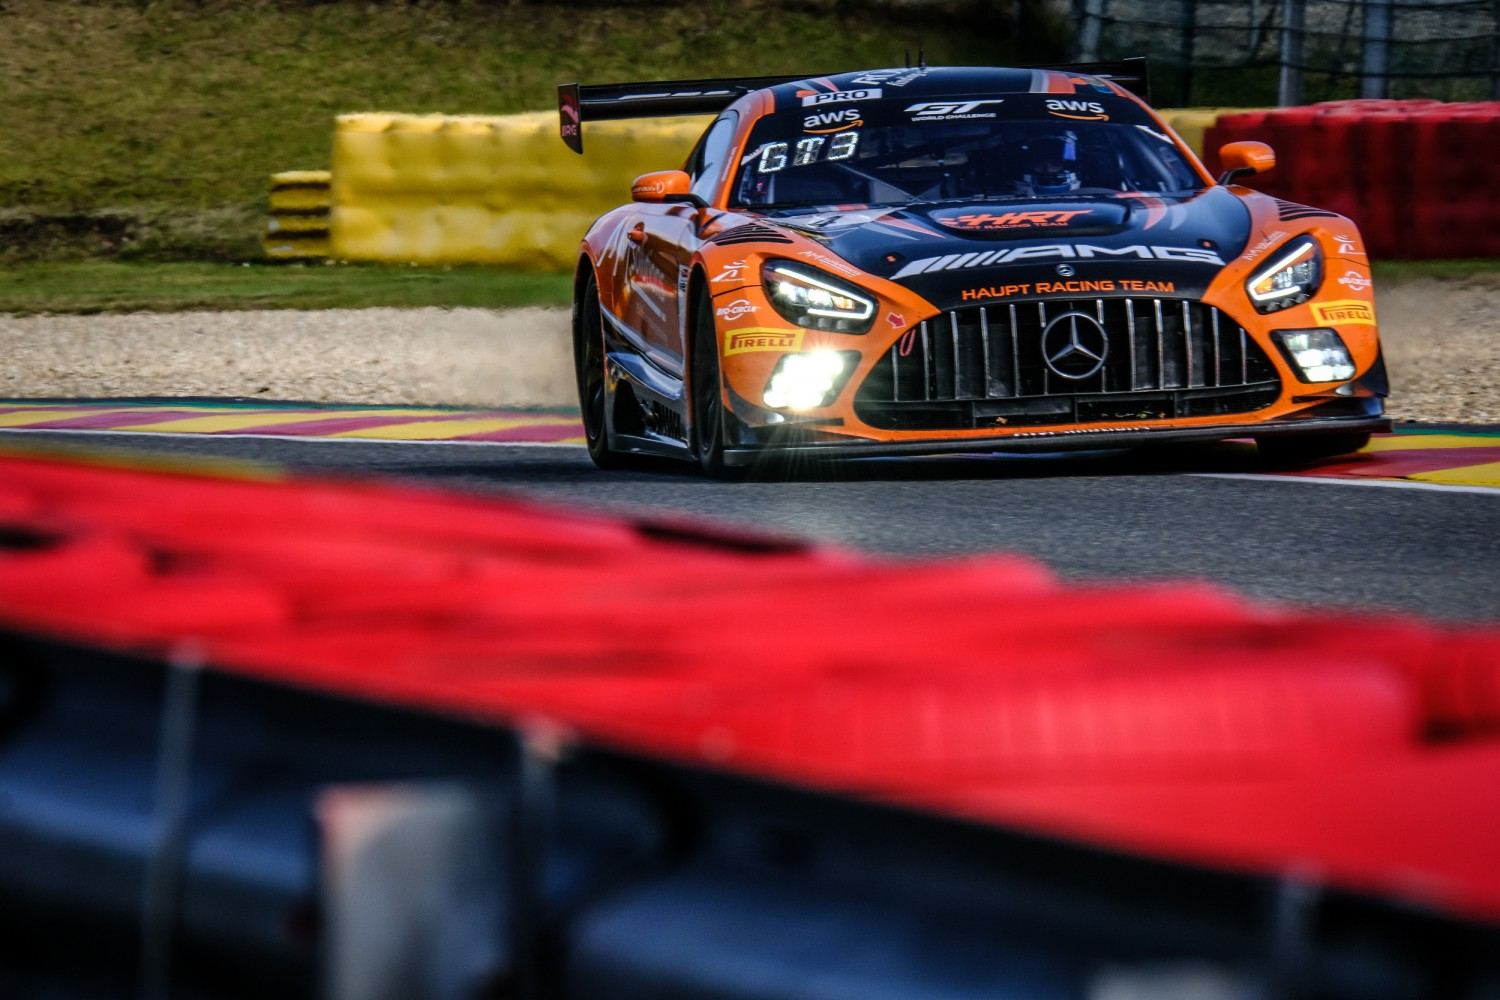 Mercedes-AMG with strong line-up for Total 24 Hours of Spa